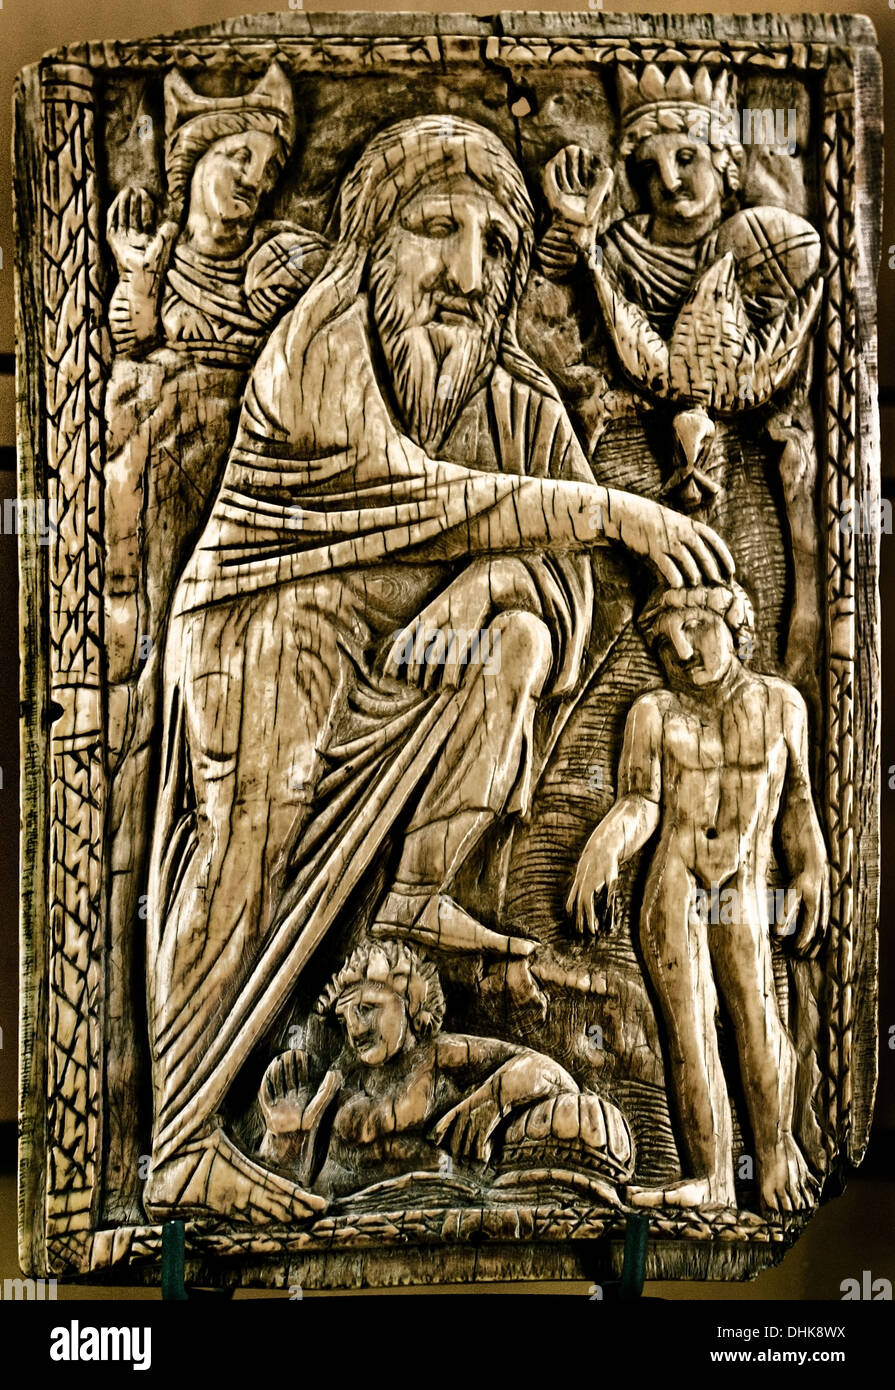 The Baptism of Christ 6th Century Eastern Mediterranean Byzantine ivories ivory - Stock Image